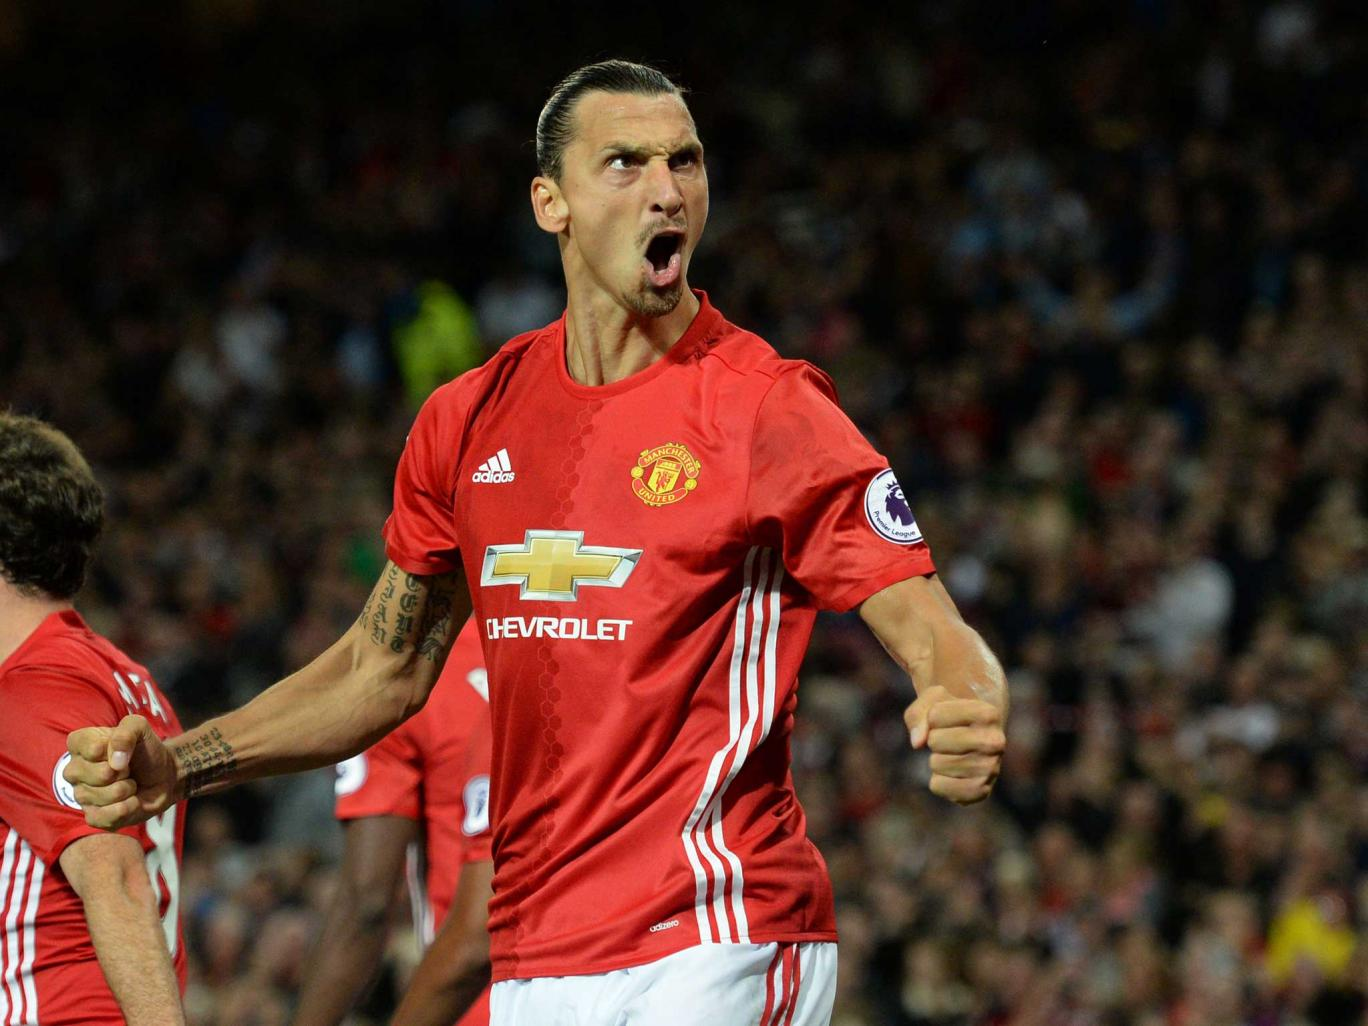 Ibrahimovic wins defamation case over doping